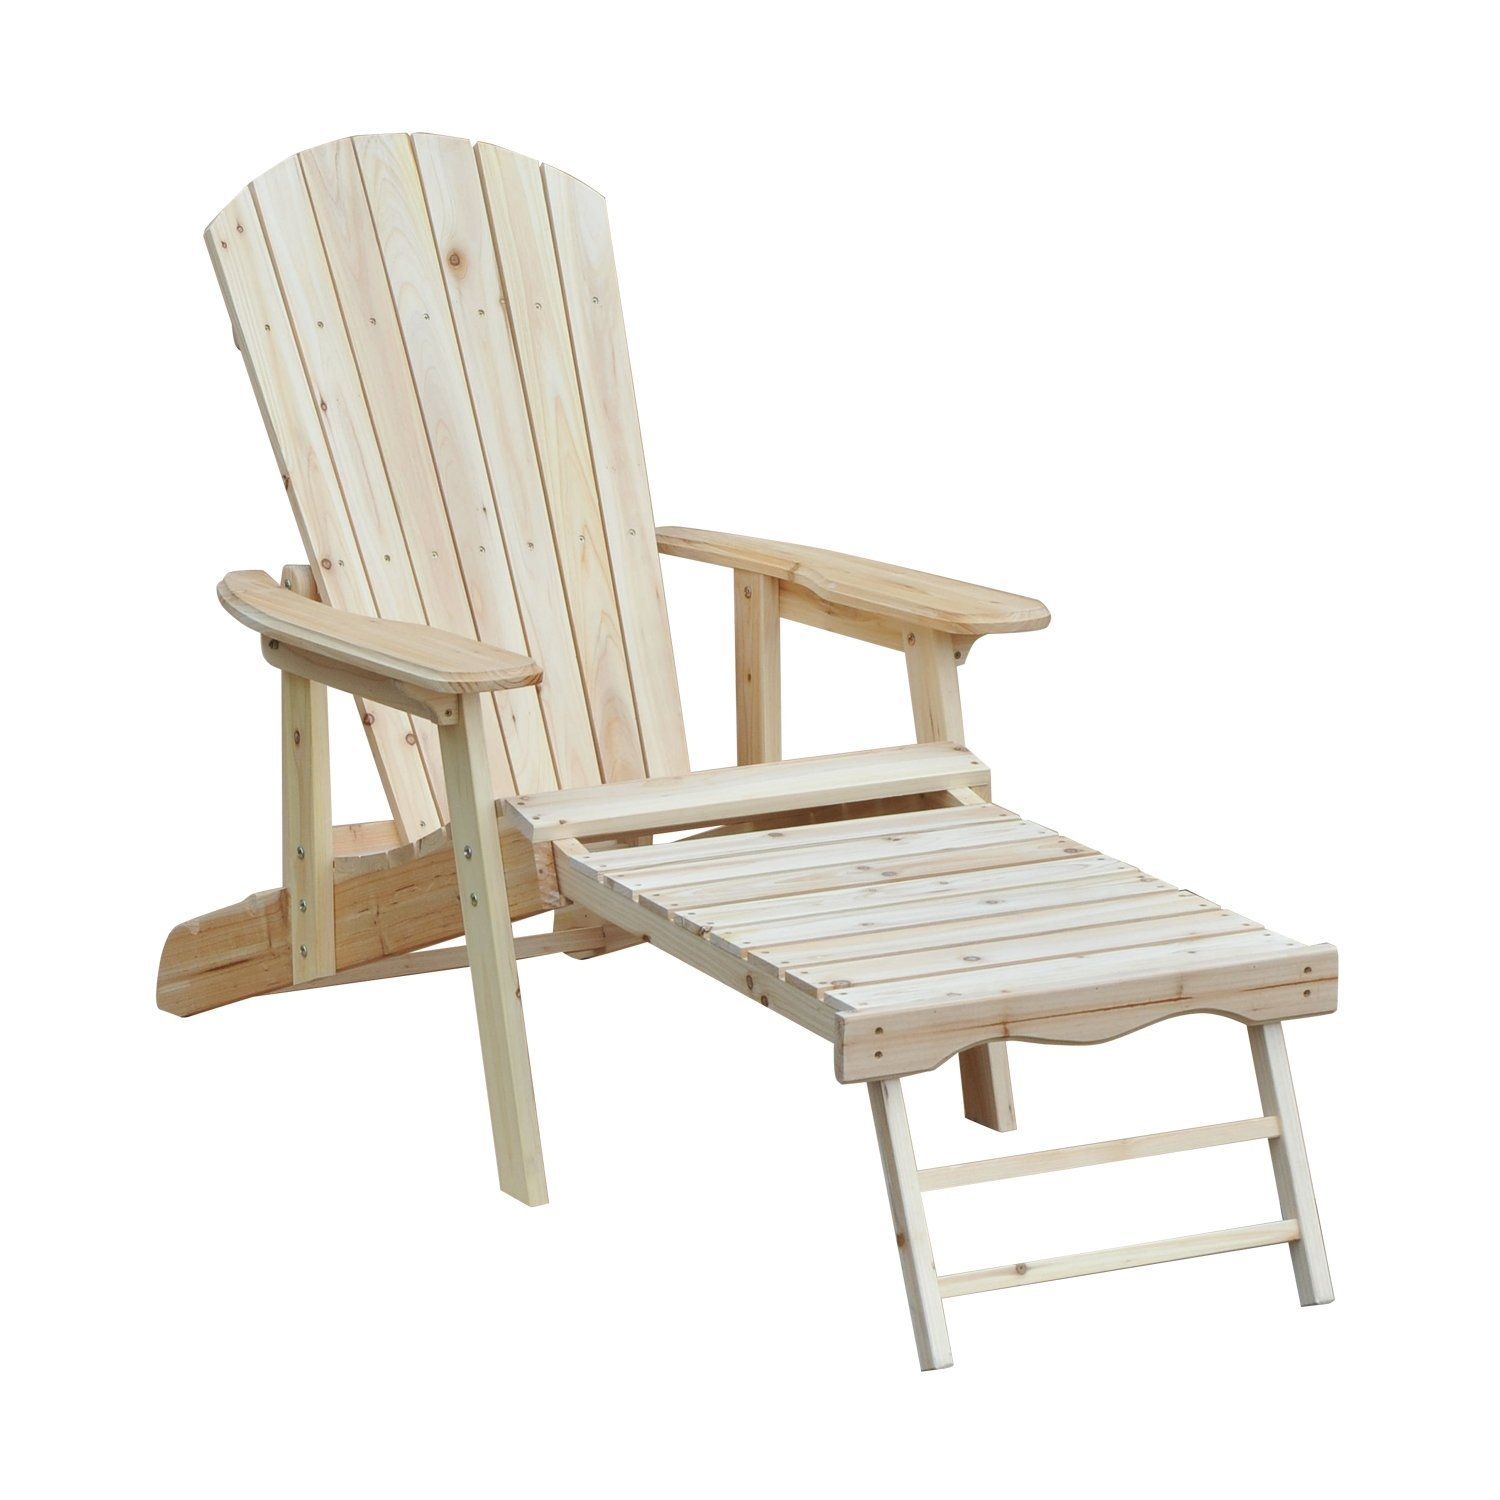 Outsunny Deck Chair Lounger Garden Wooden Adirondack Folding Adjustable With Footrest 175x70x80 Cm